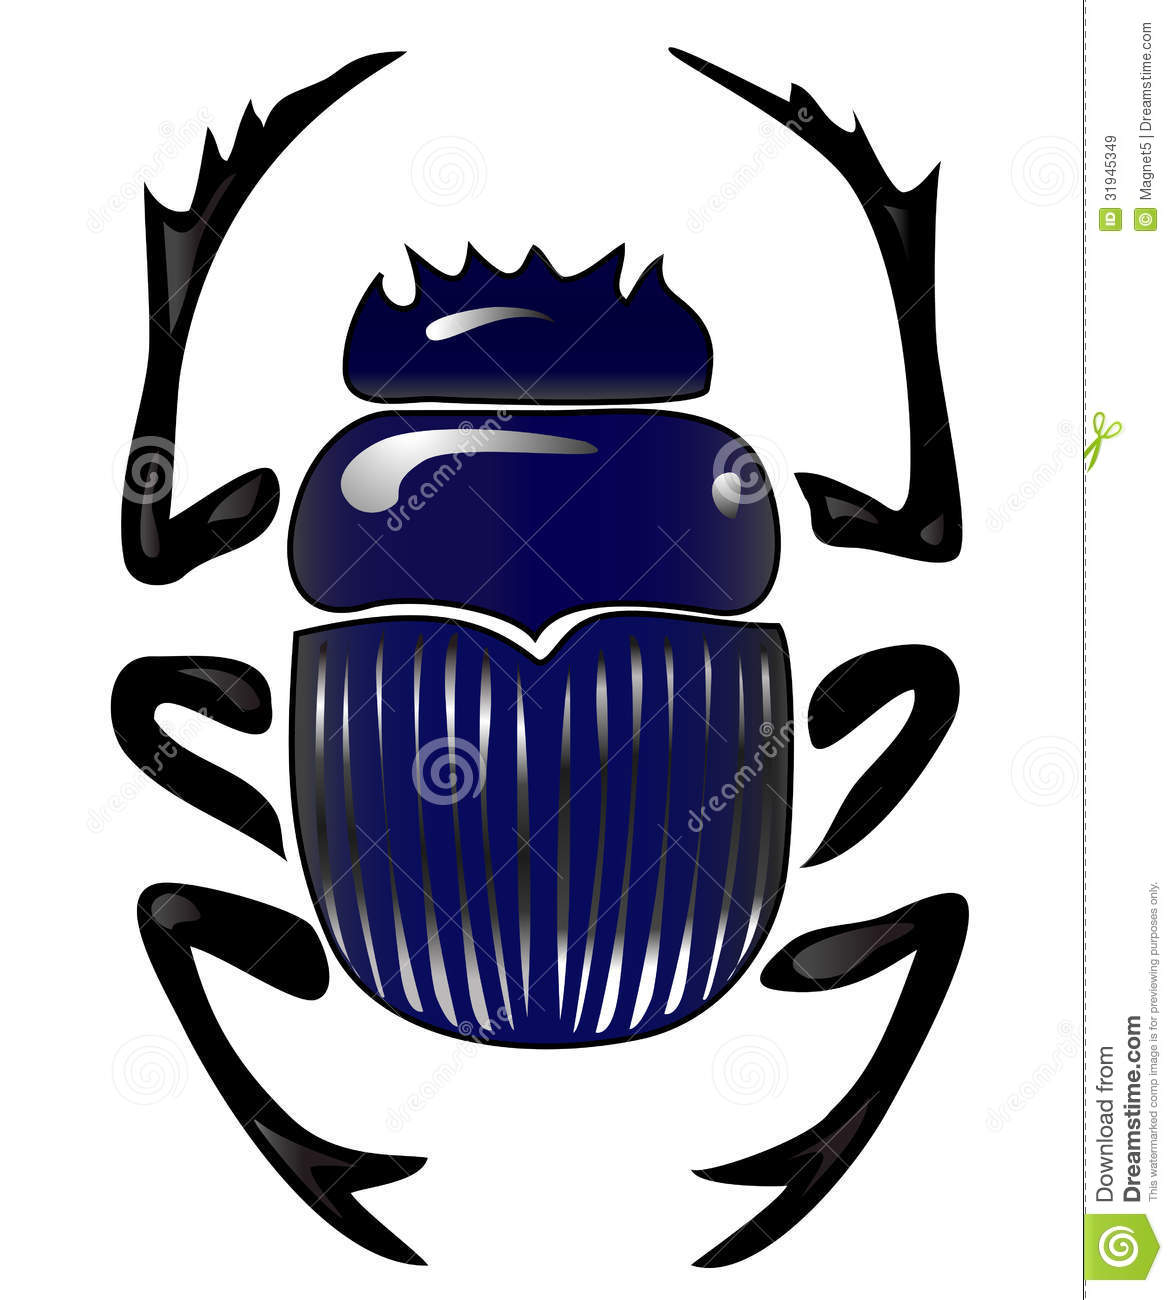 representation of a scarab beetle Egyptian symbol of the sunEgyptian Symbols Scarab